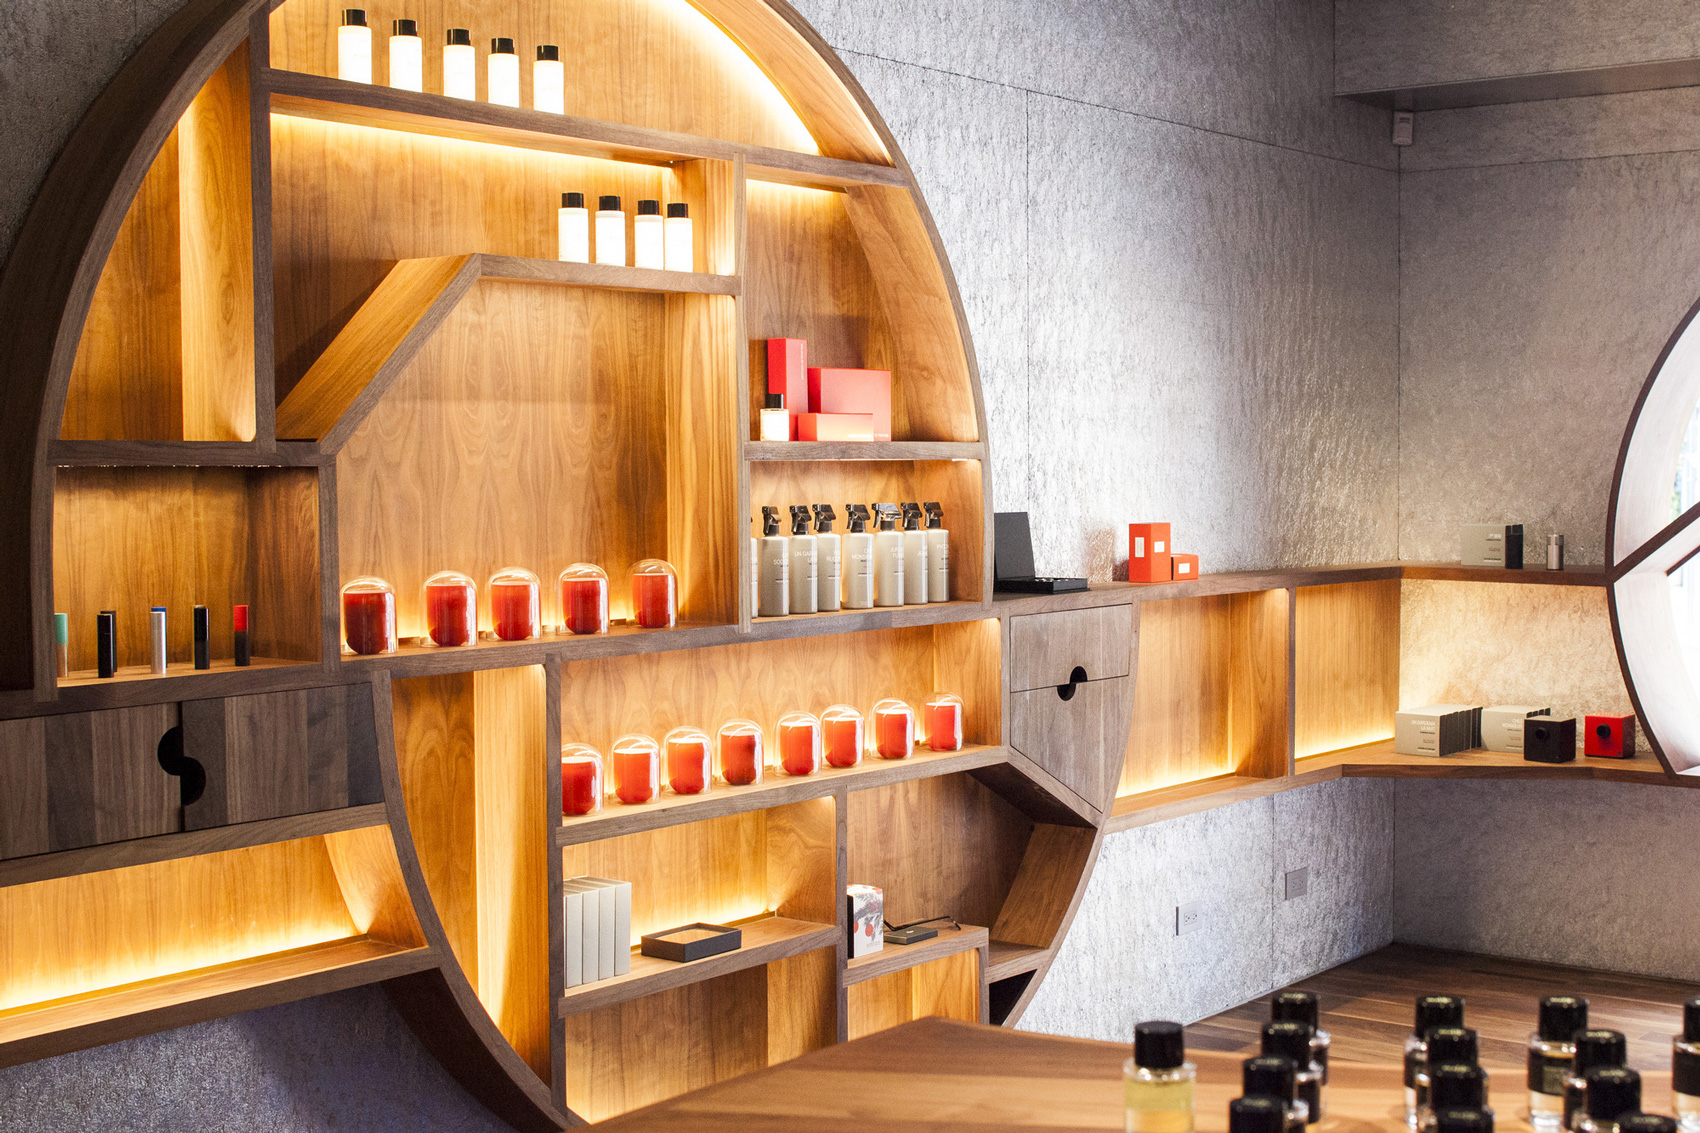 Frederic Malle / Steven Holl Architects (21)